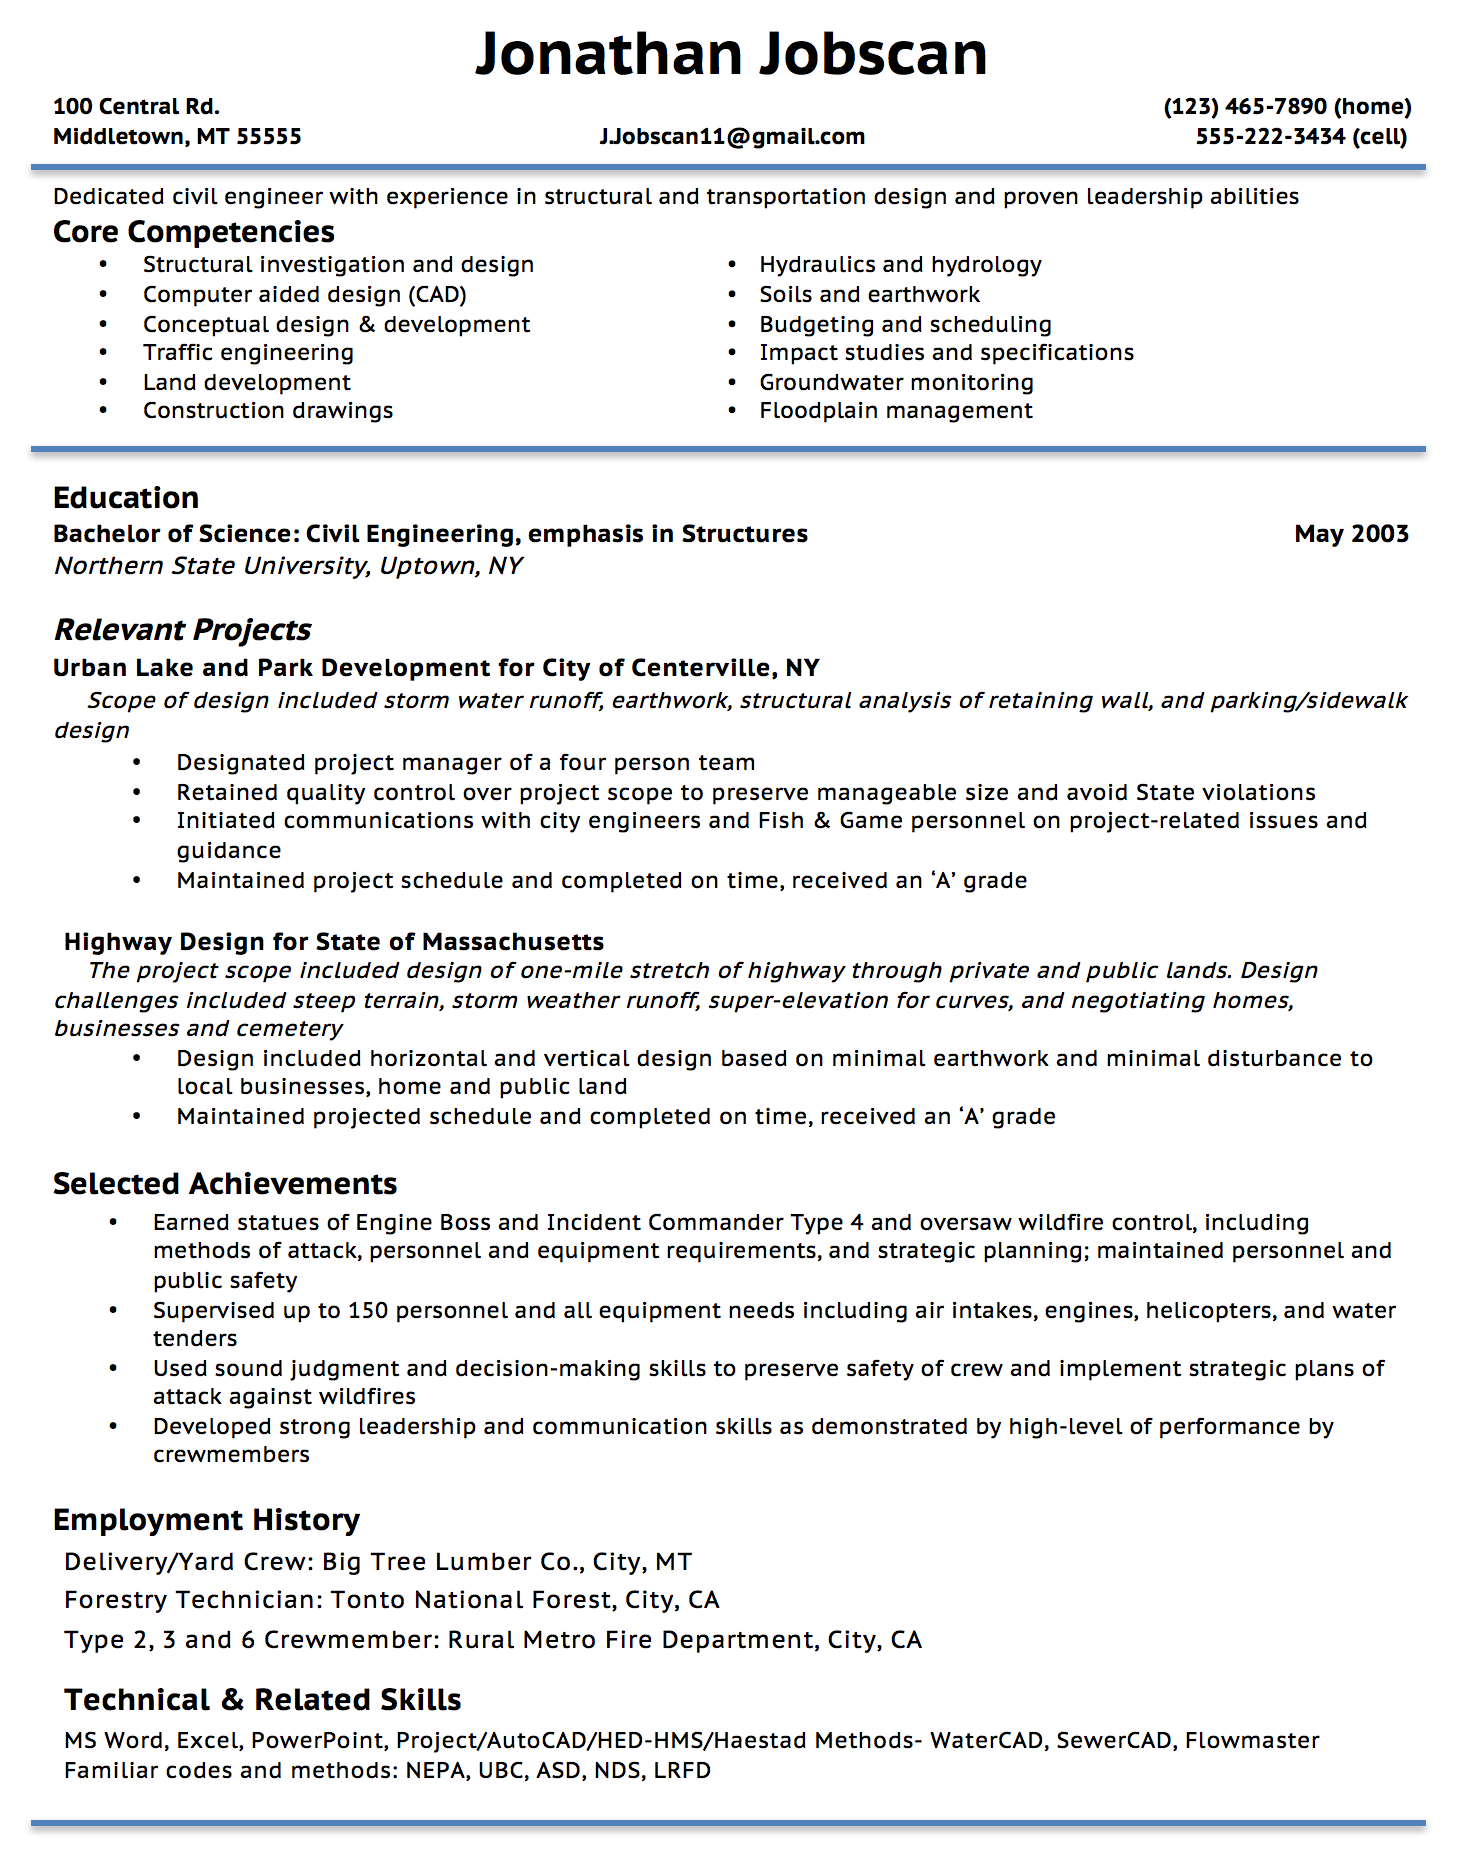 Opposenewapstandardsus  Unique Resume Writing Guide  Jobscan With Luxury Example Of A Functional Resume Format With Amusing Courtesy Clerk Resume Also Courier Resume In Addition Leonardo Da Vinci Resume And Resume Database Software As Well As Professional Server Resume Additionally Early Childhood Teacher Resume From Jobscanco With Opposenewapstandardsus  Luxury Resume Writing Guide  Jobscan With Amusing Example Of A Functional Resume Format And Unique Courtesy Clerk Resume Also Courier Resume In Addition Leonardo Da Vinci Resume From Jobscanco